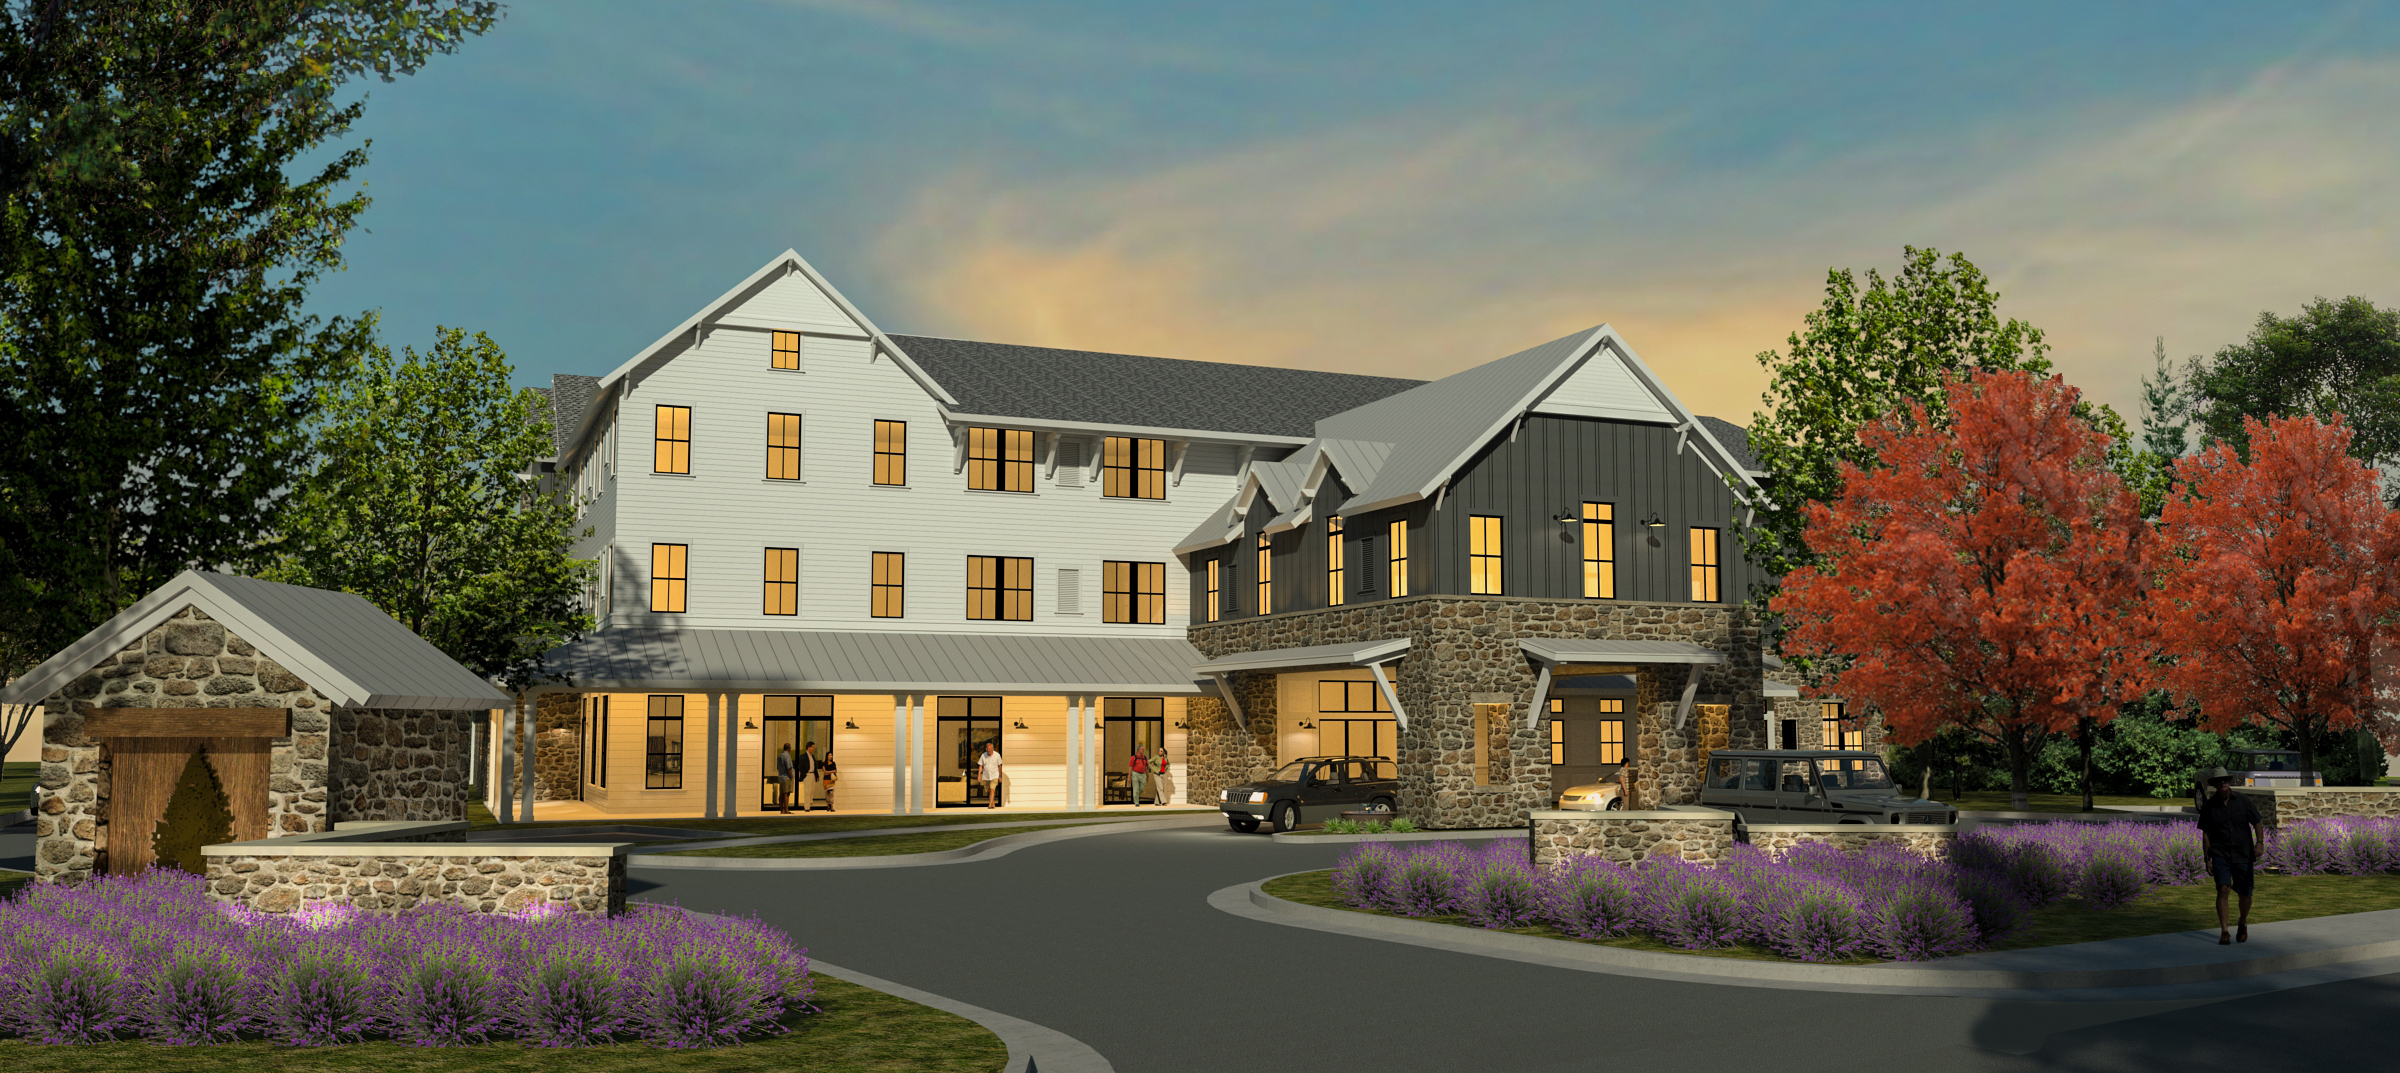 louisville assisted living expansion new assisted living facilities